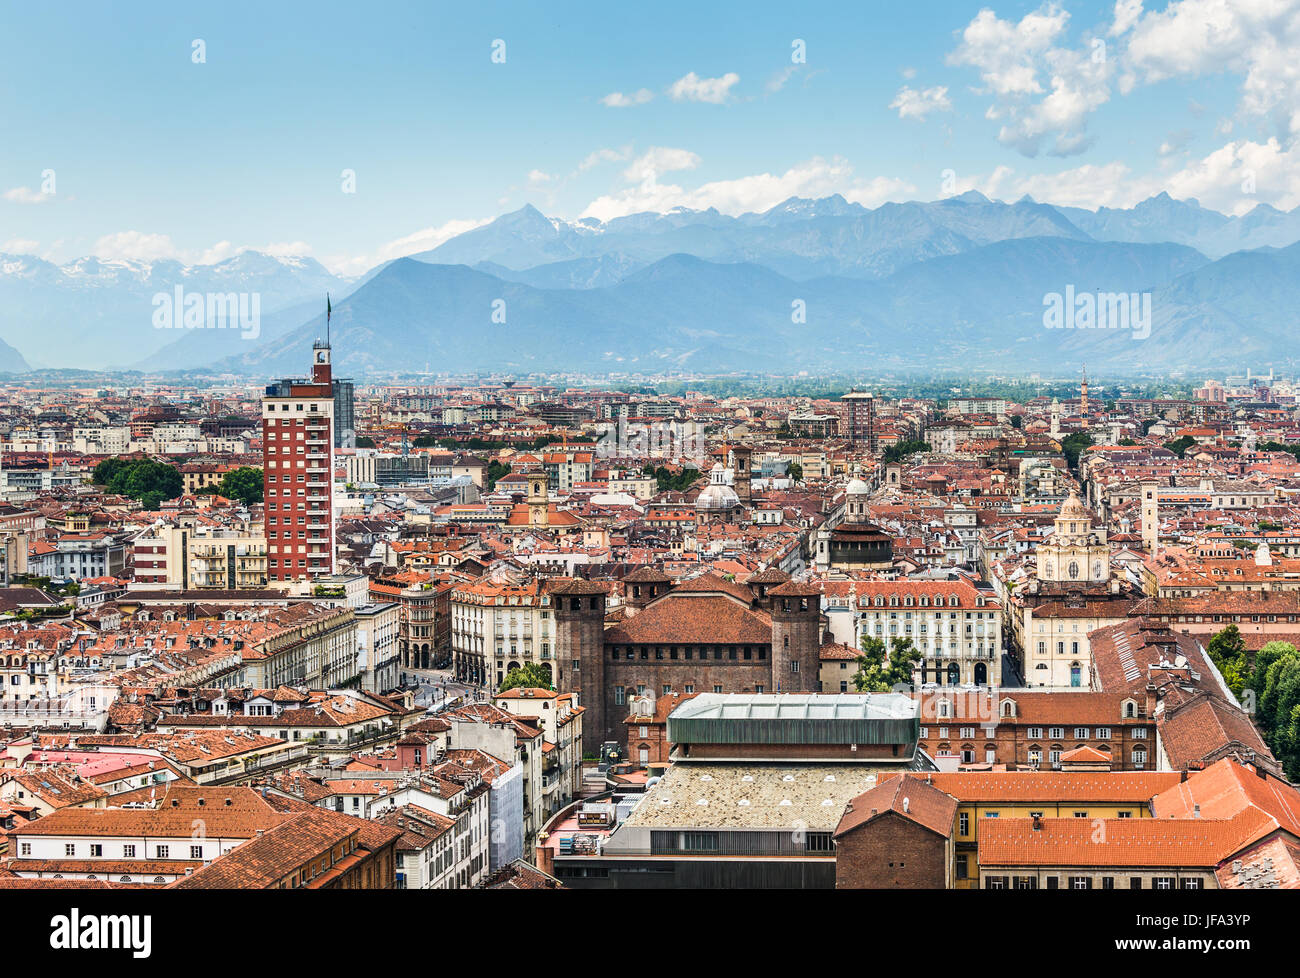 Turin Aerial view, Turin, Italy - Stock Image